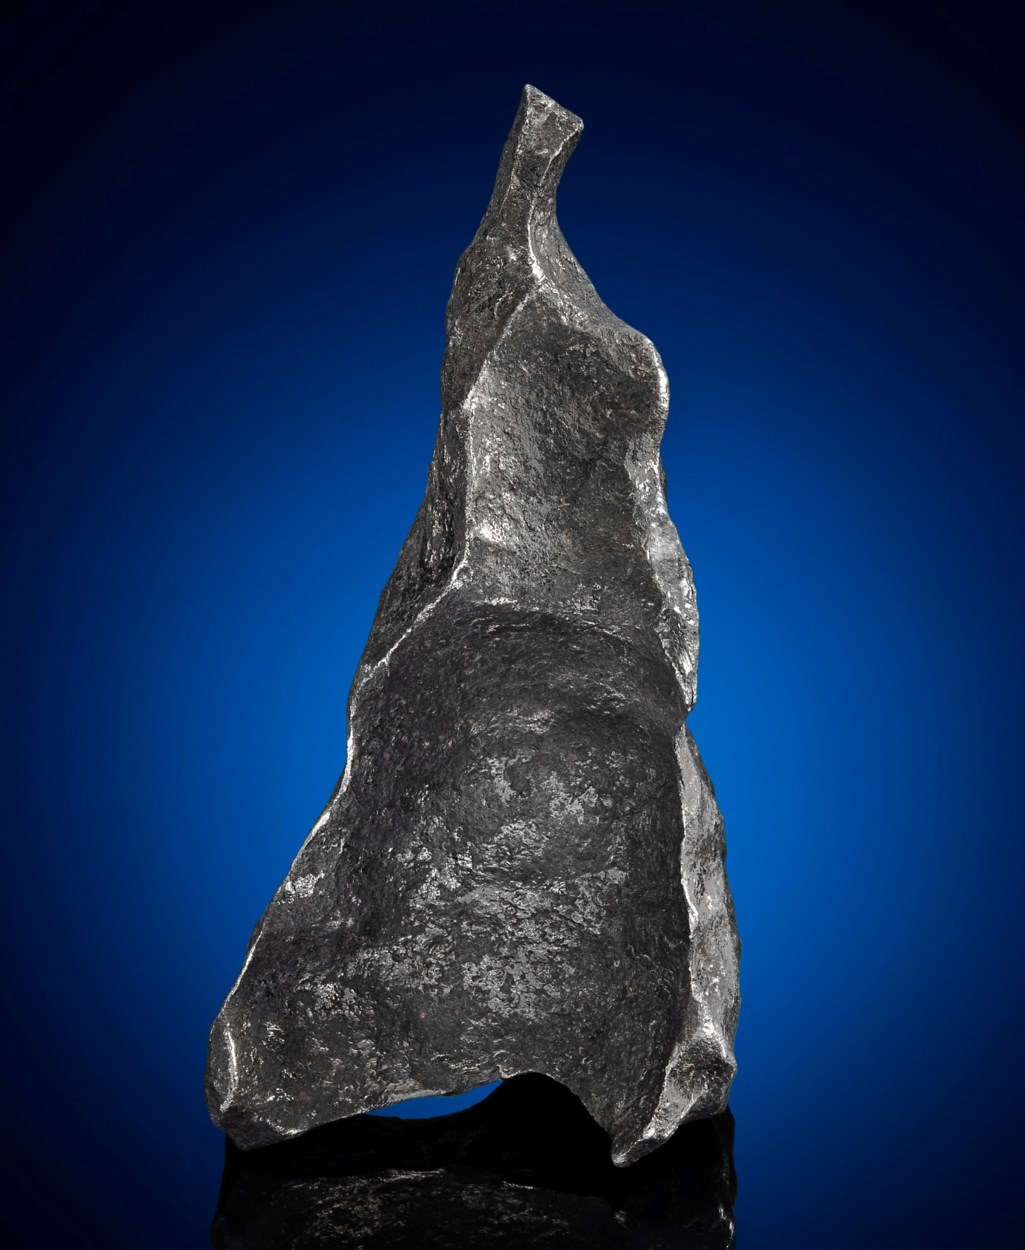 GIBEON METEORITE — MINIMALIST FORM FROM OUTER SPACE